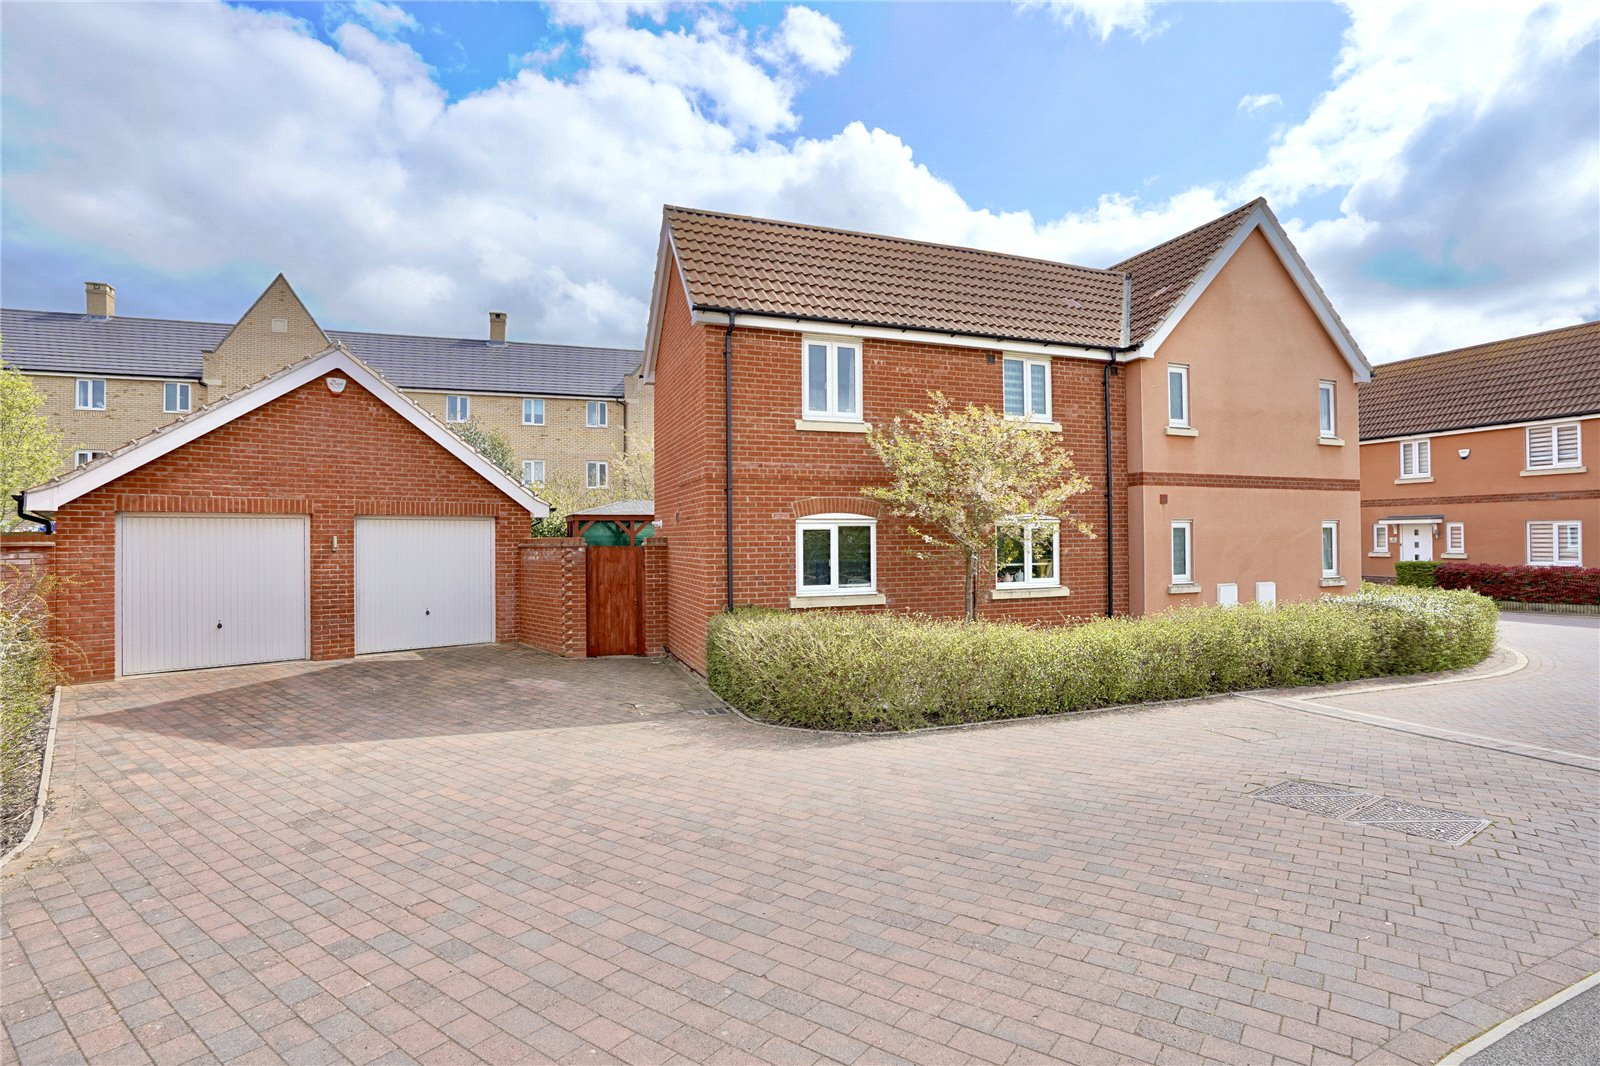 4 bed house for sale in Eynesbury, Daffodil Close, PE19 2LJ, PE19